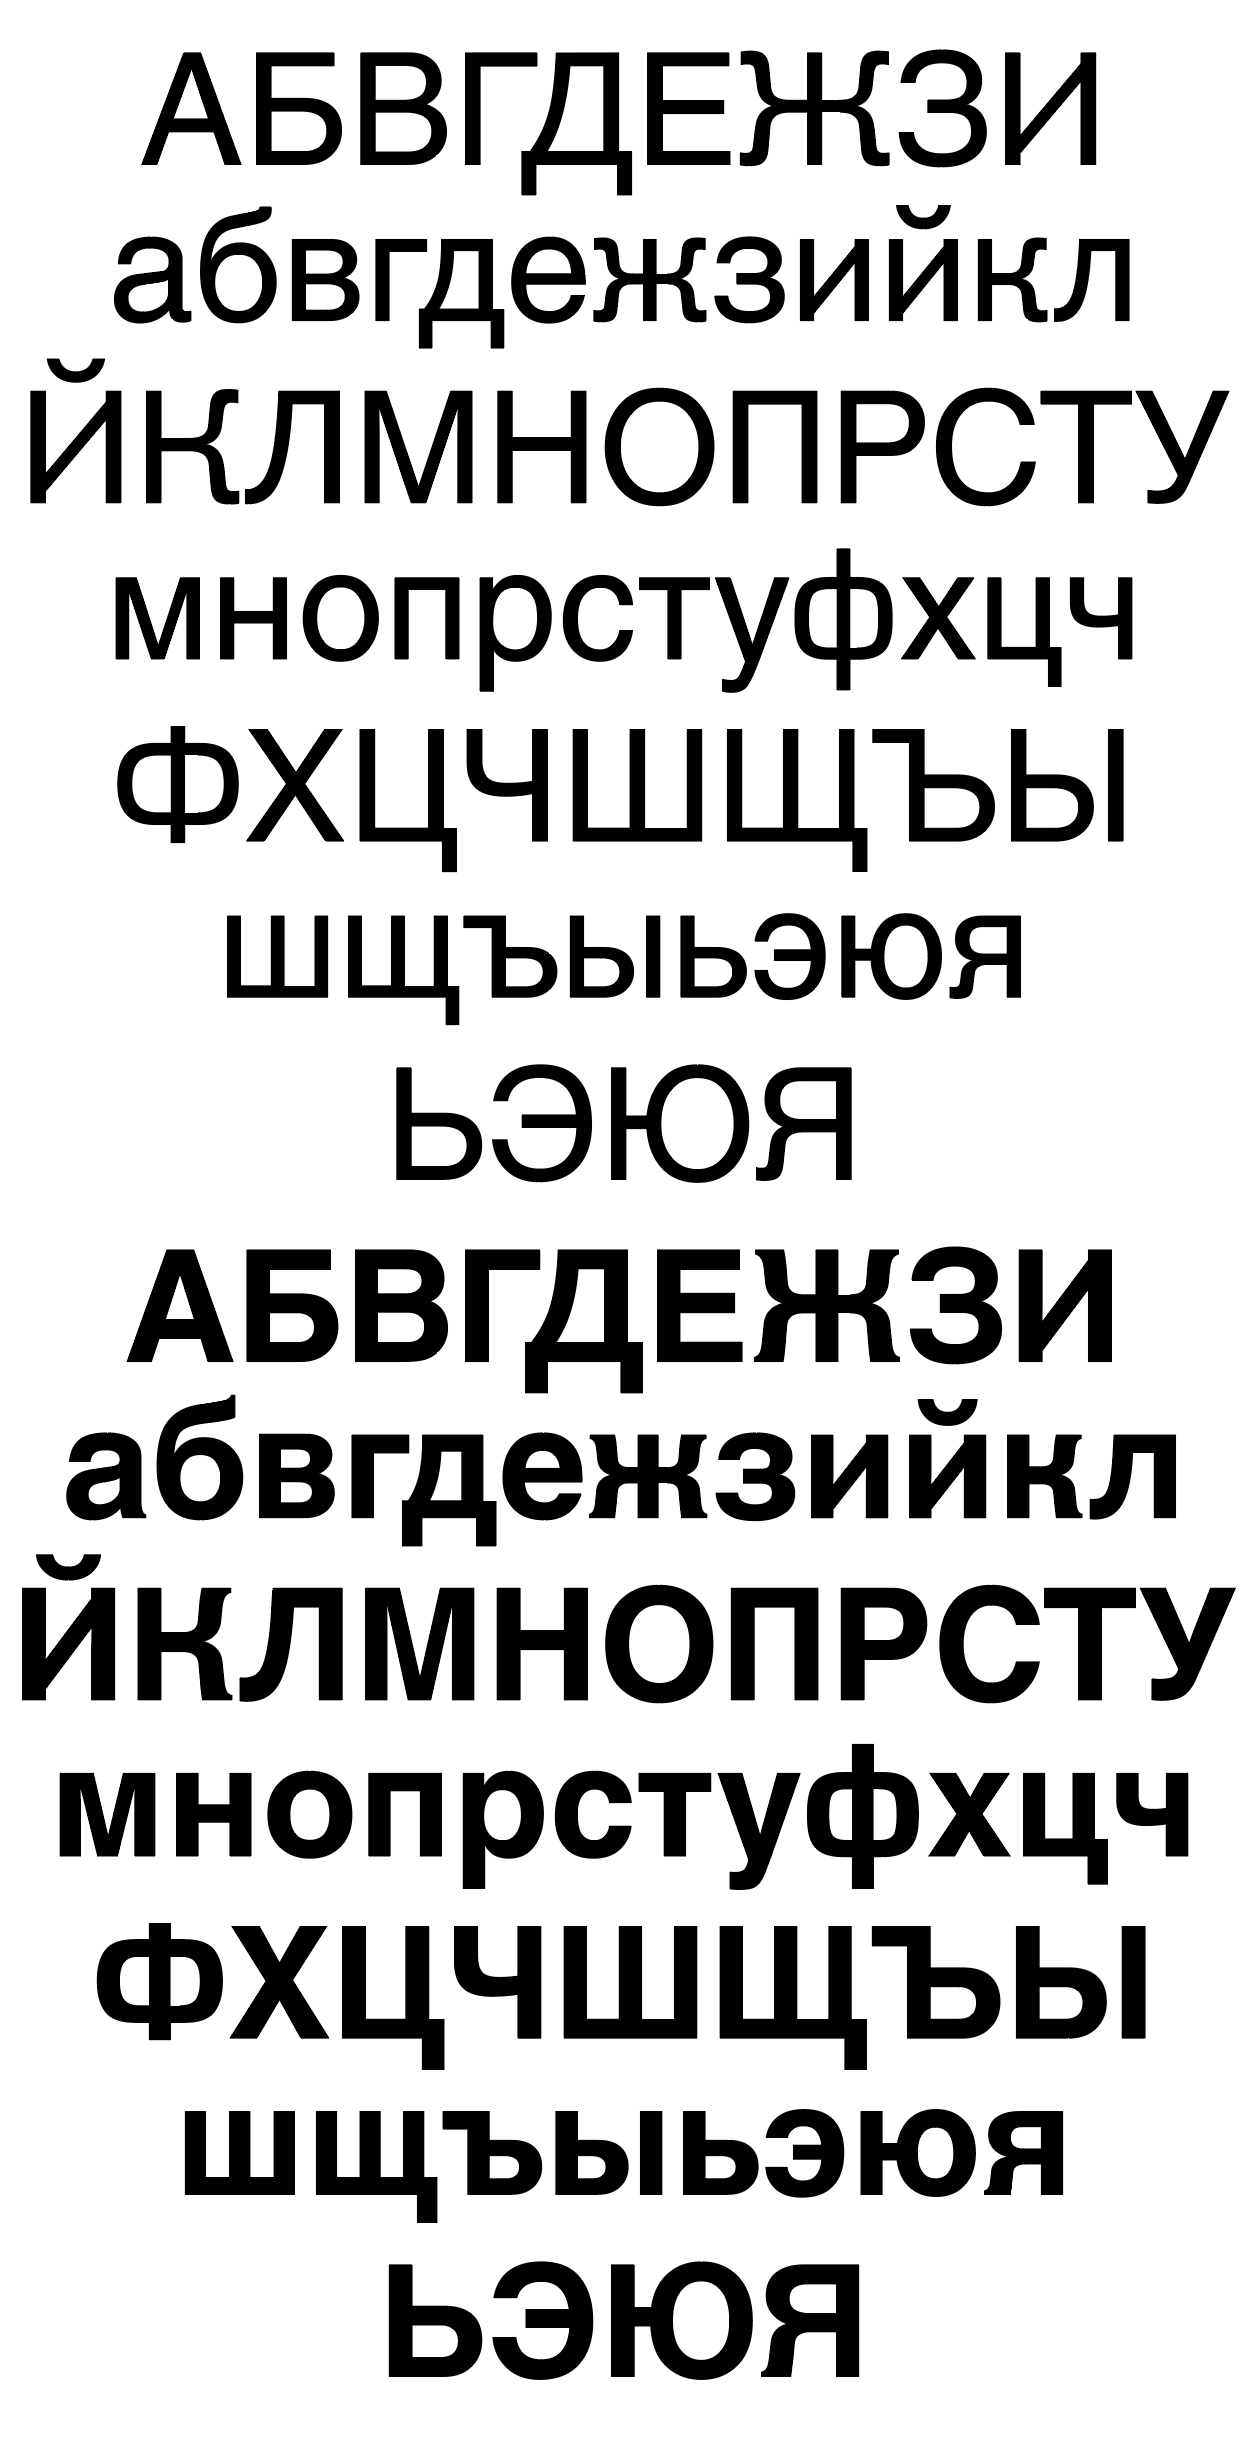 Mixing and matching italic and roman shapes in cyrillic